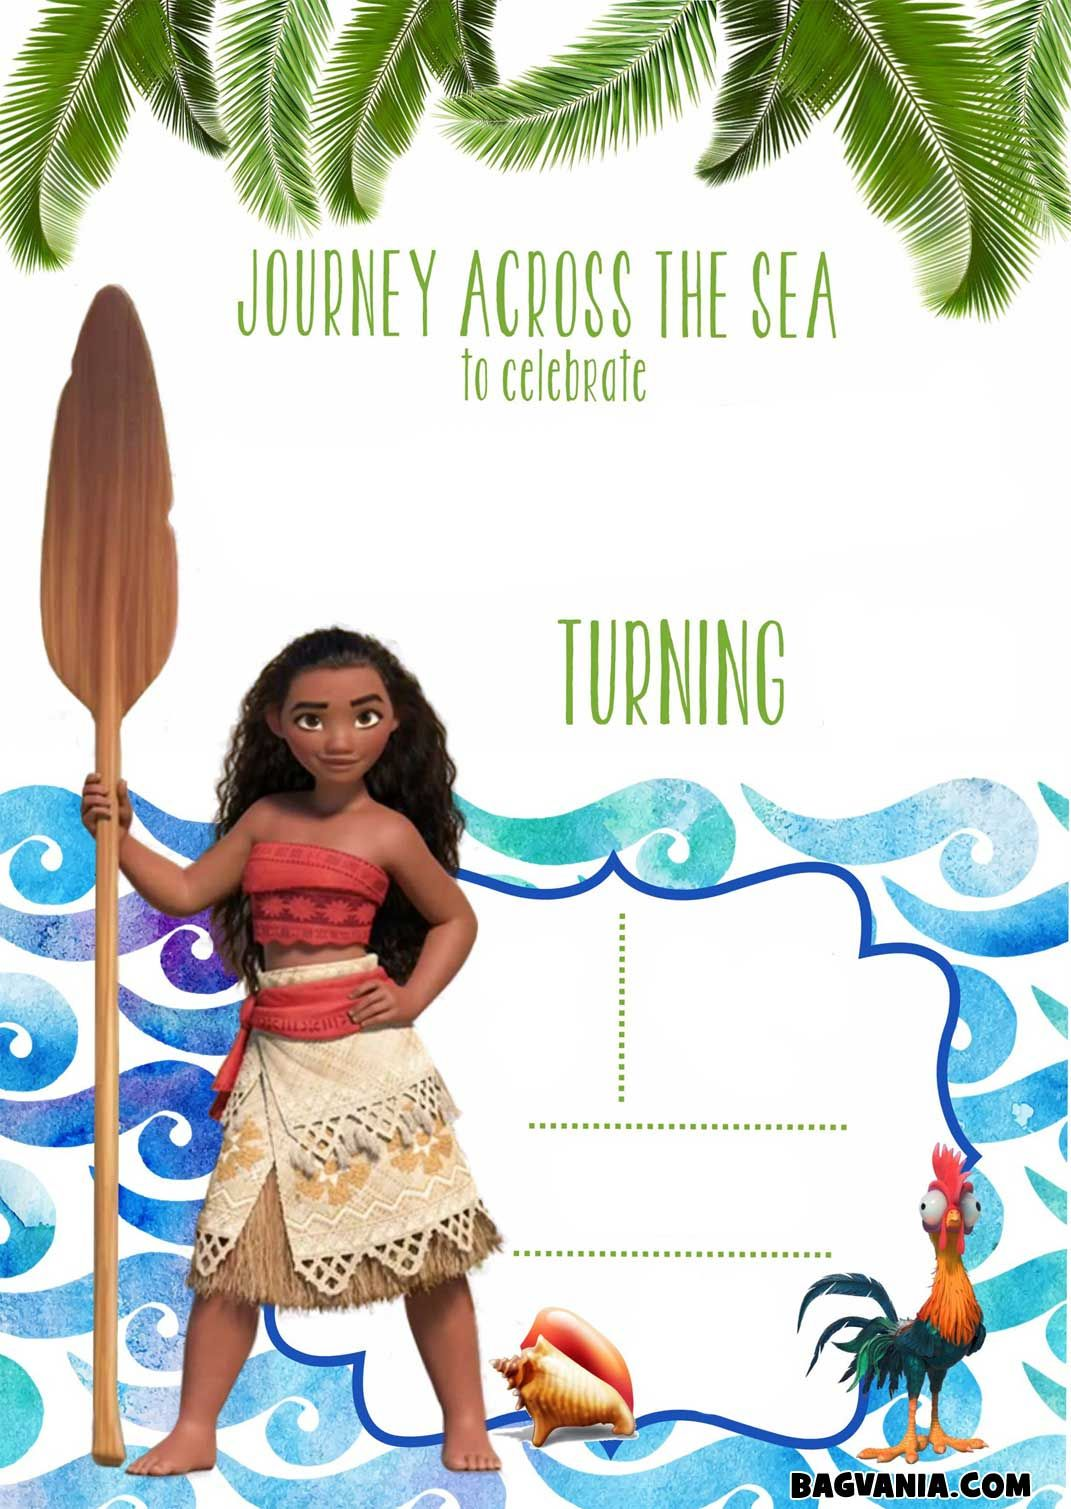 photograph regarding Printable Moana Invitations referred to as 10 Heartwarming Moana Birthday Invites for yourself